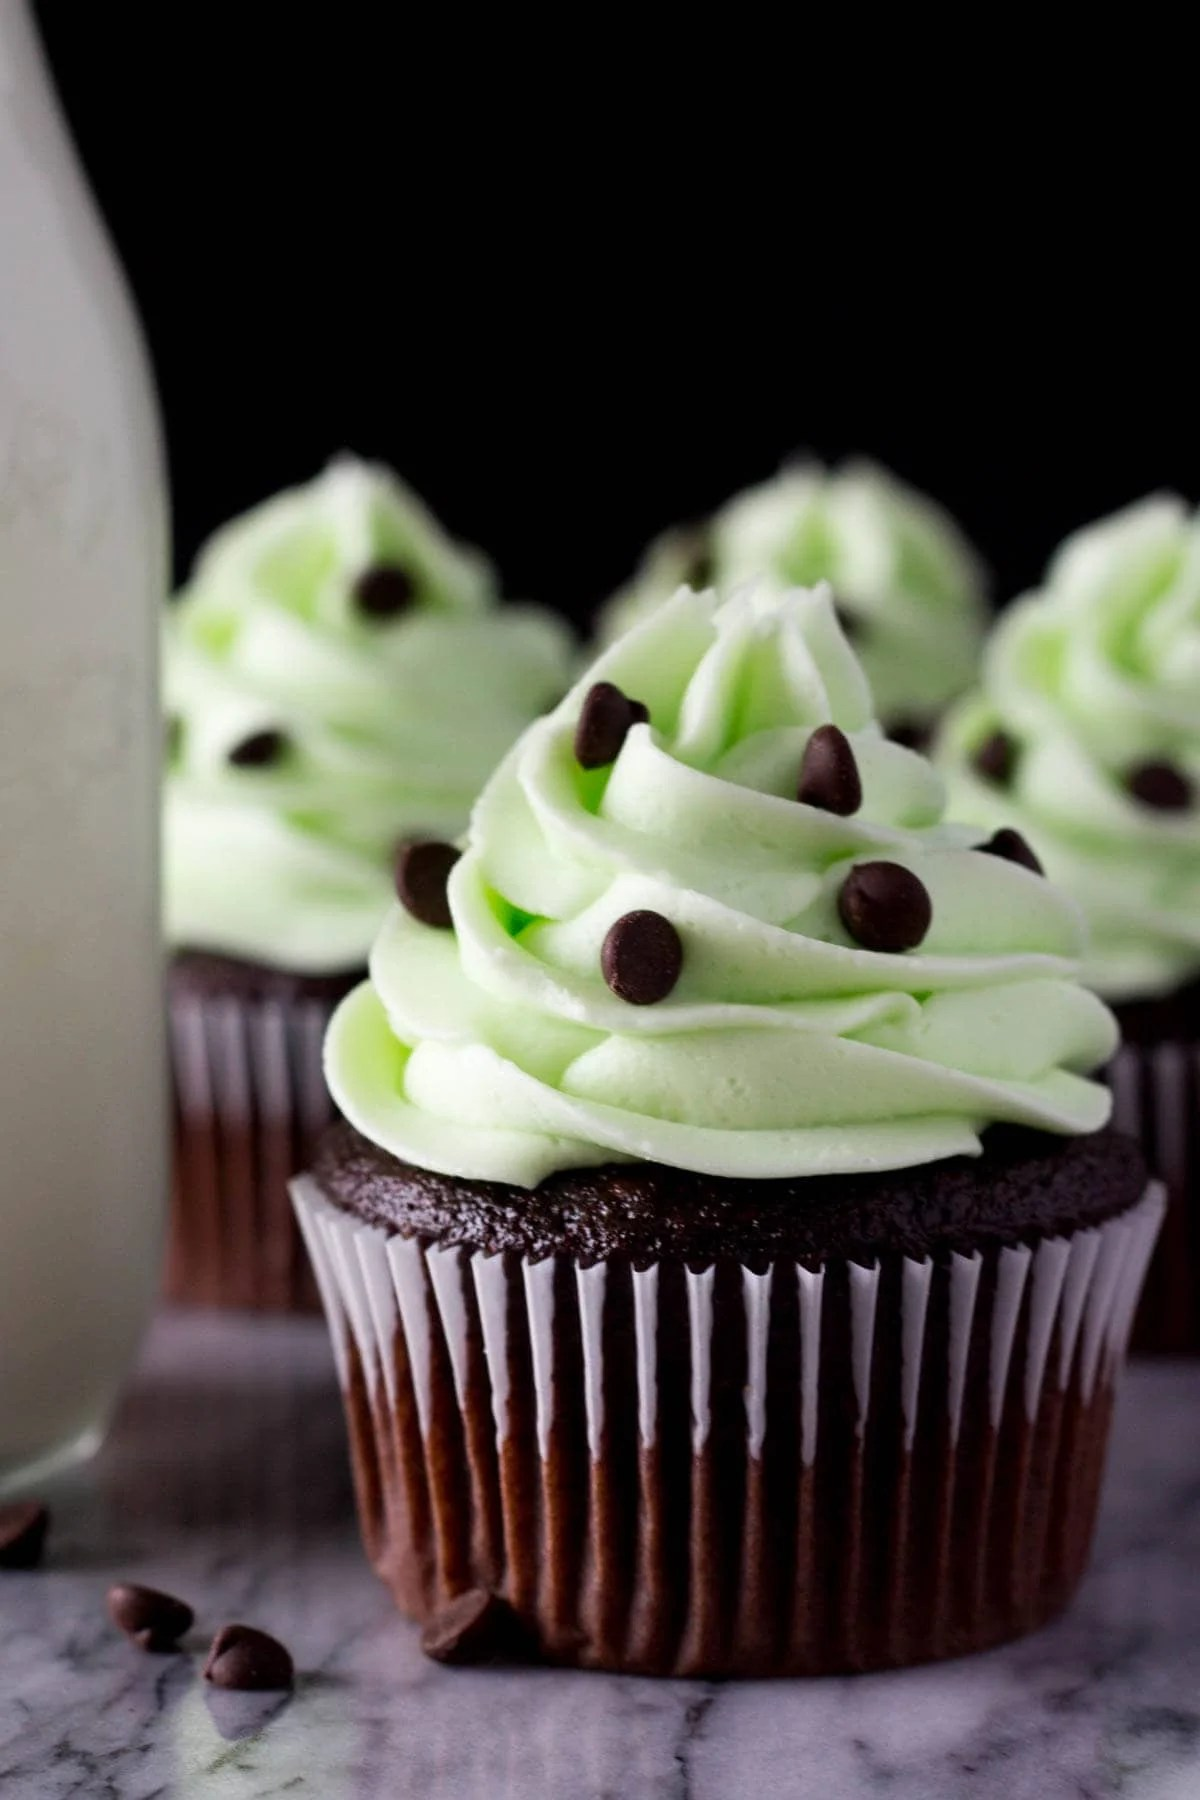 Mint Chocolate Cupcakes Just So Tasty